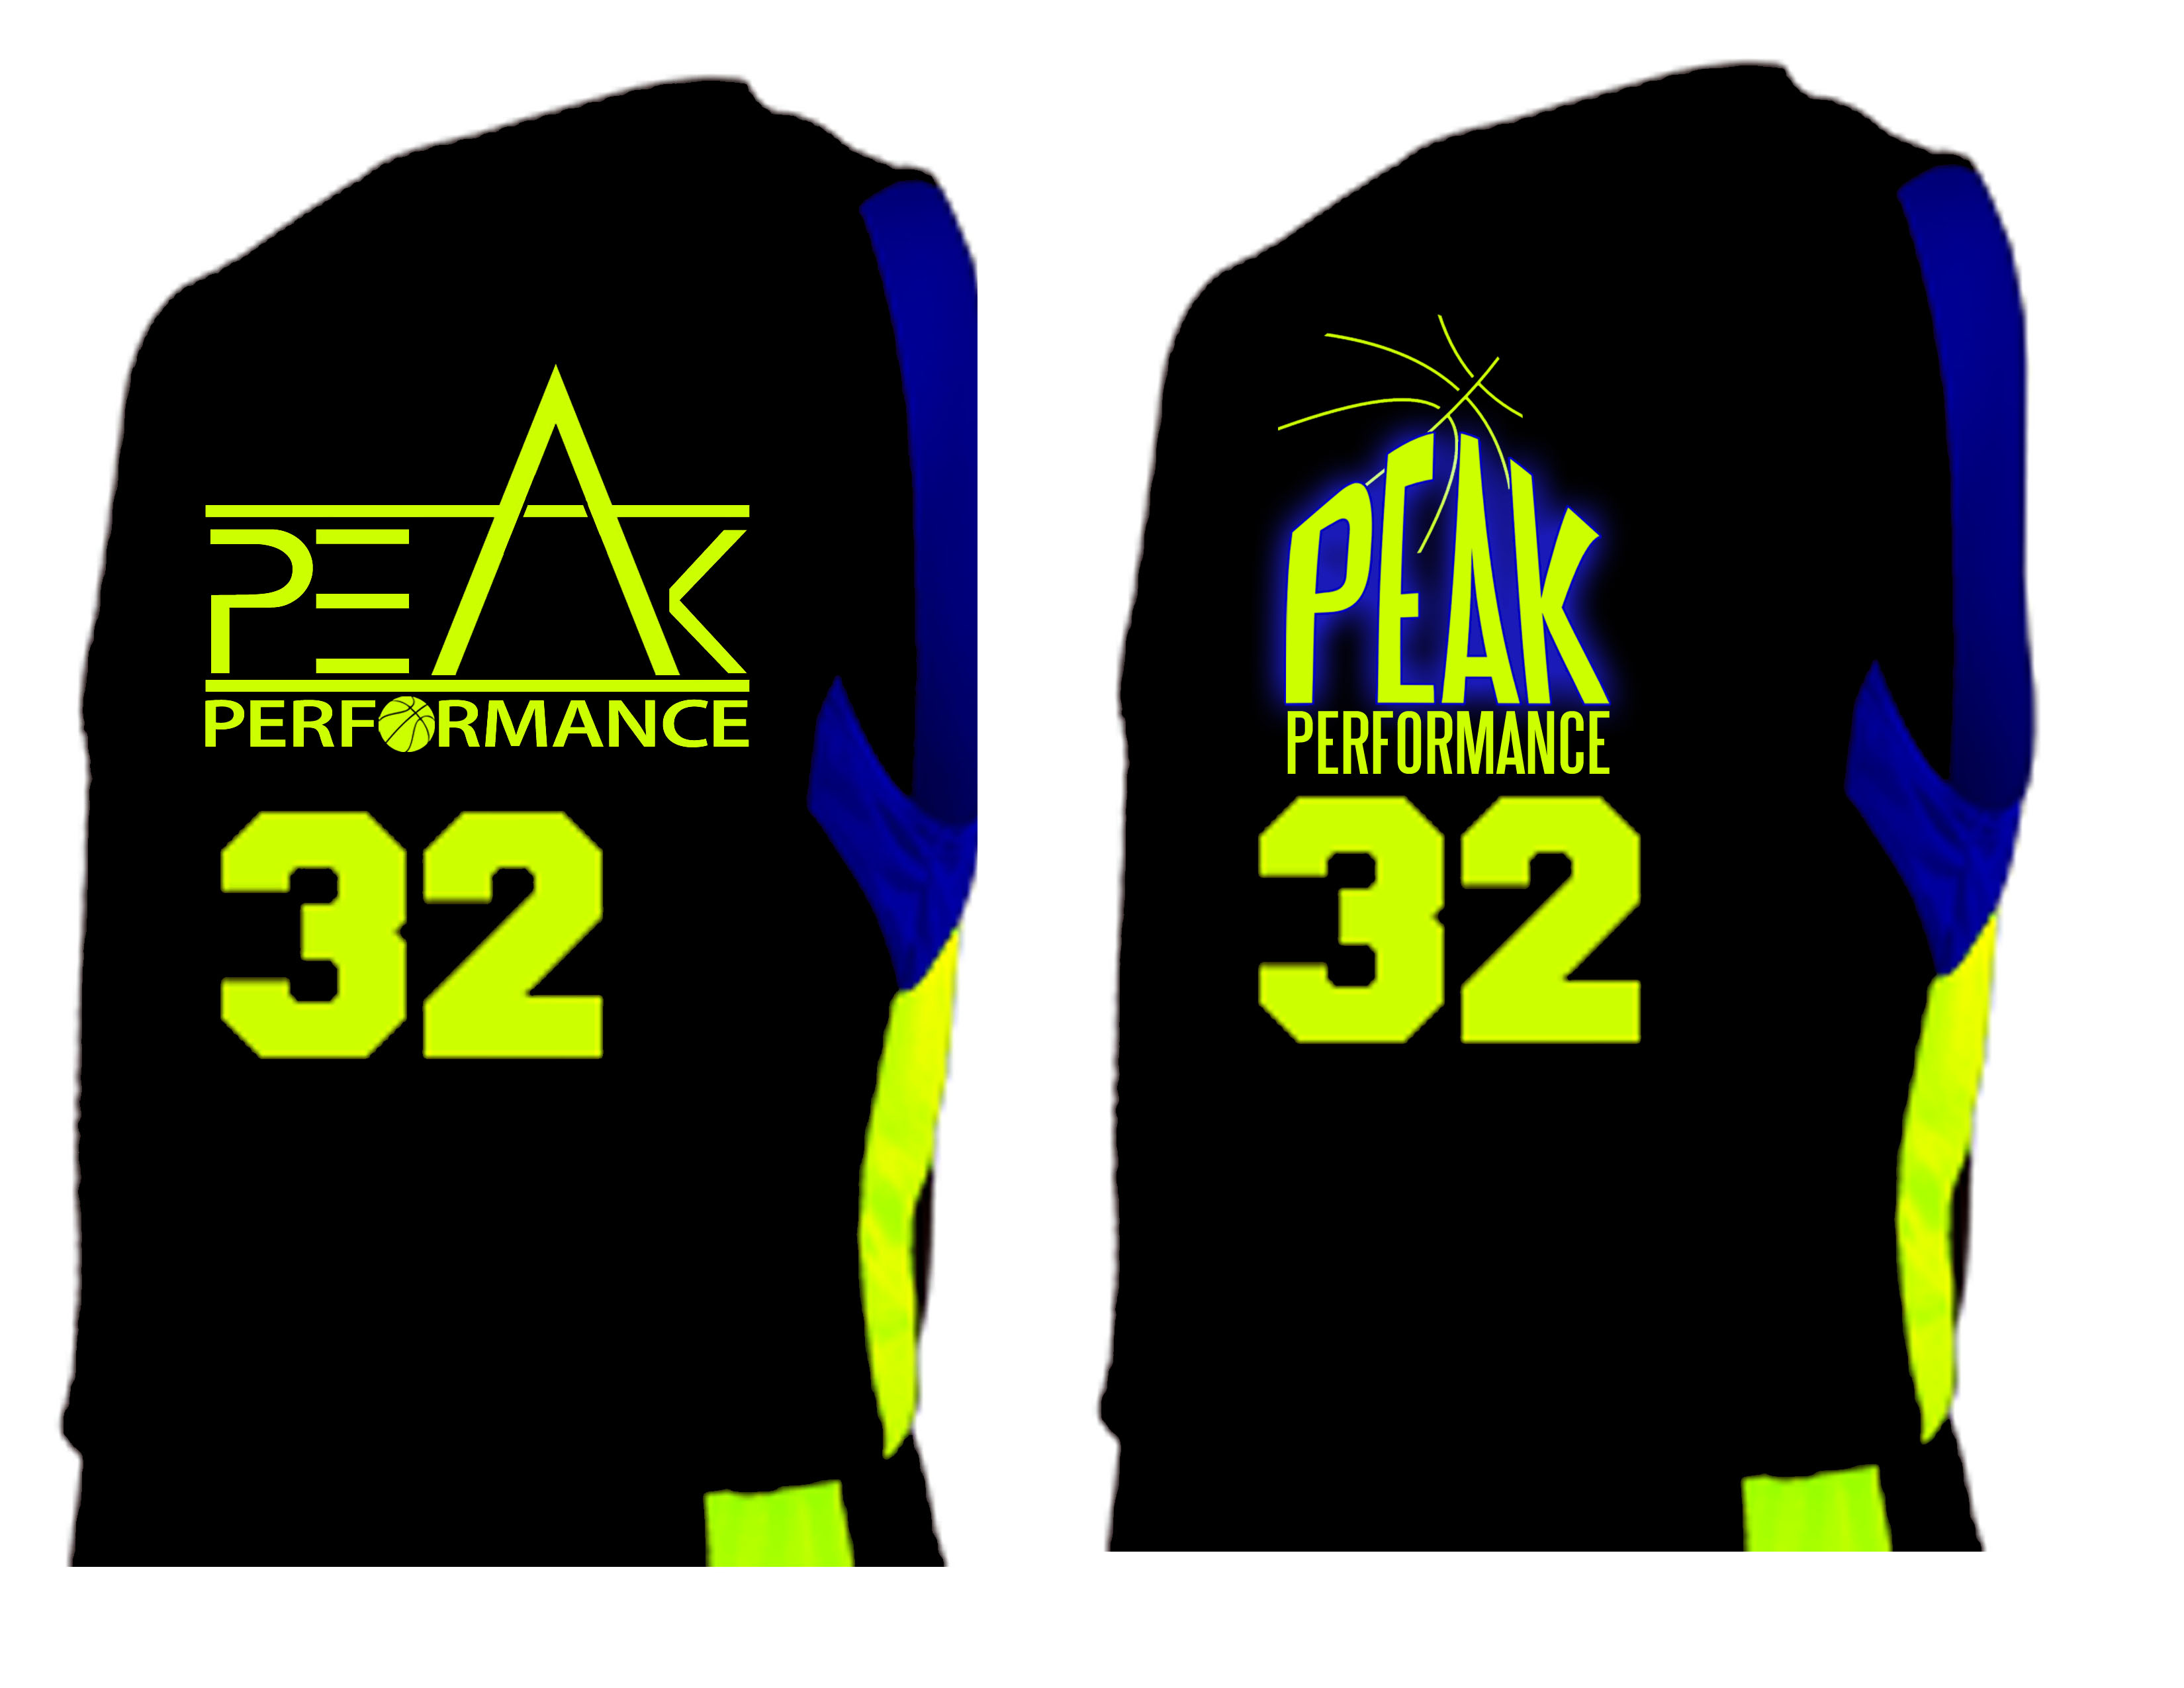 Peak Performance basketball jersey